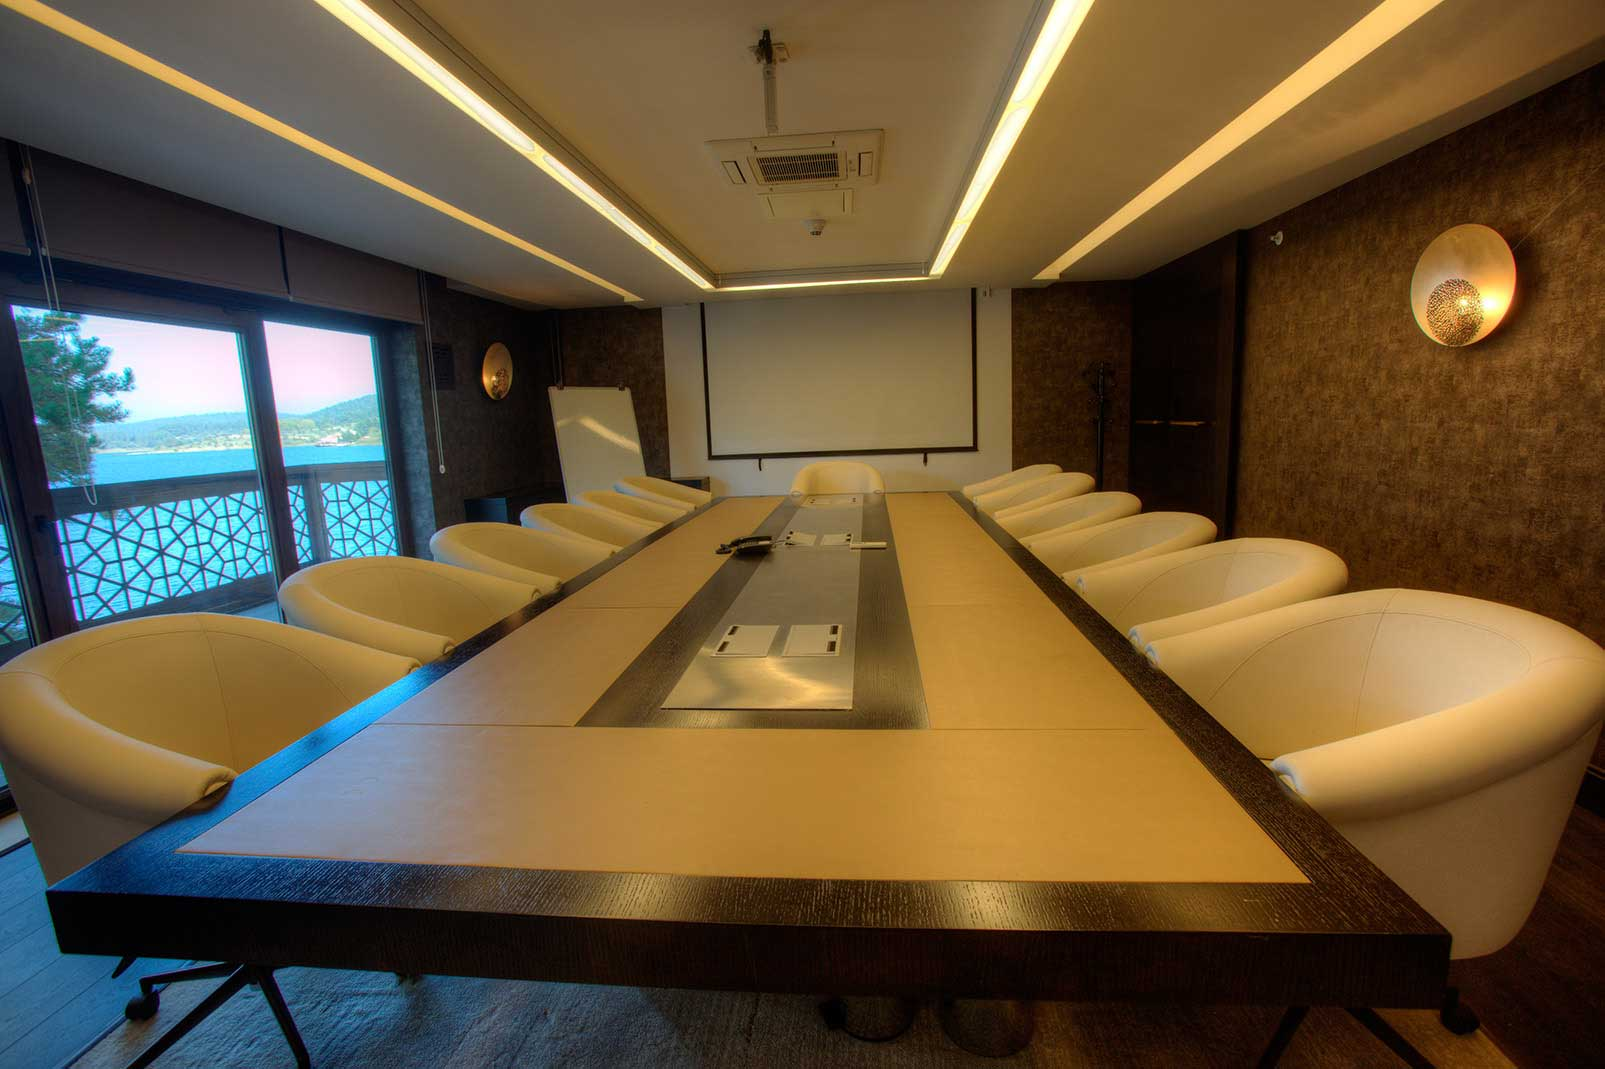 Taksim Abant Kosk Hotel | MEETINGS